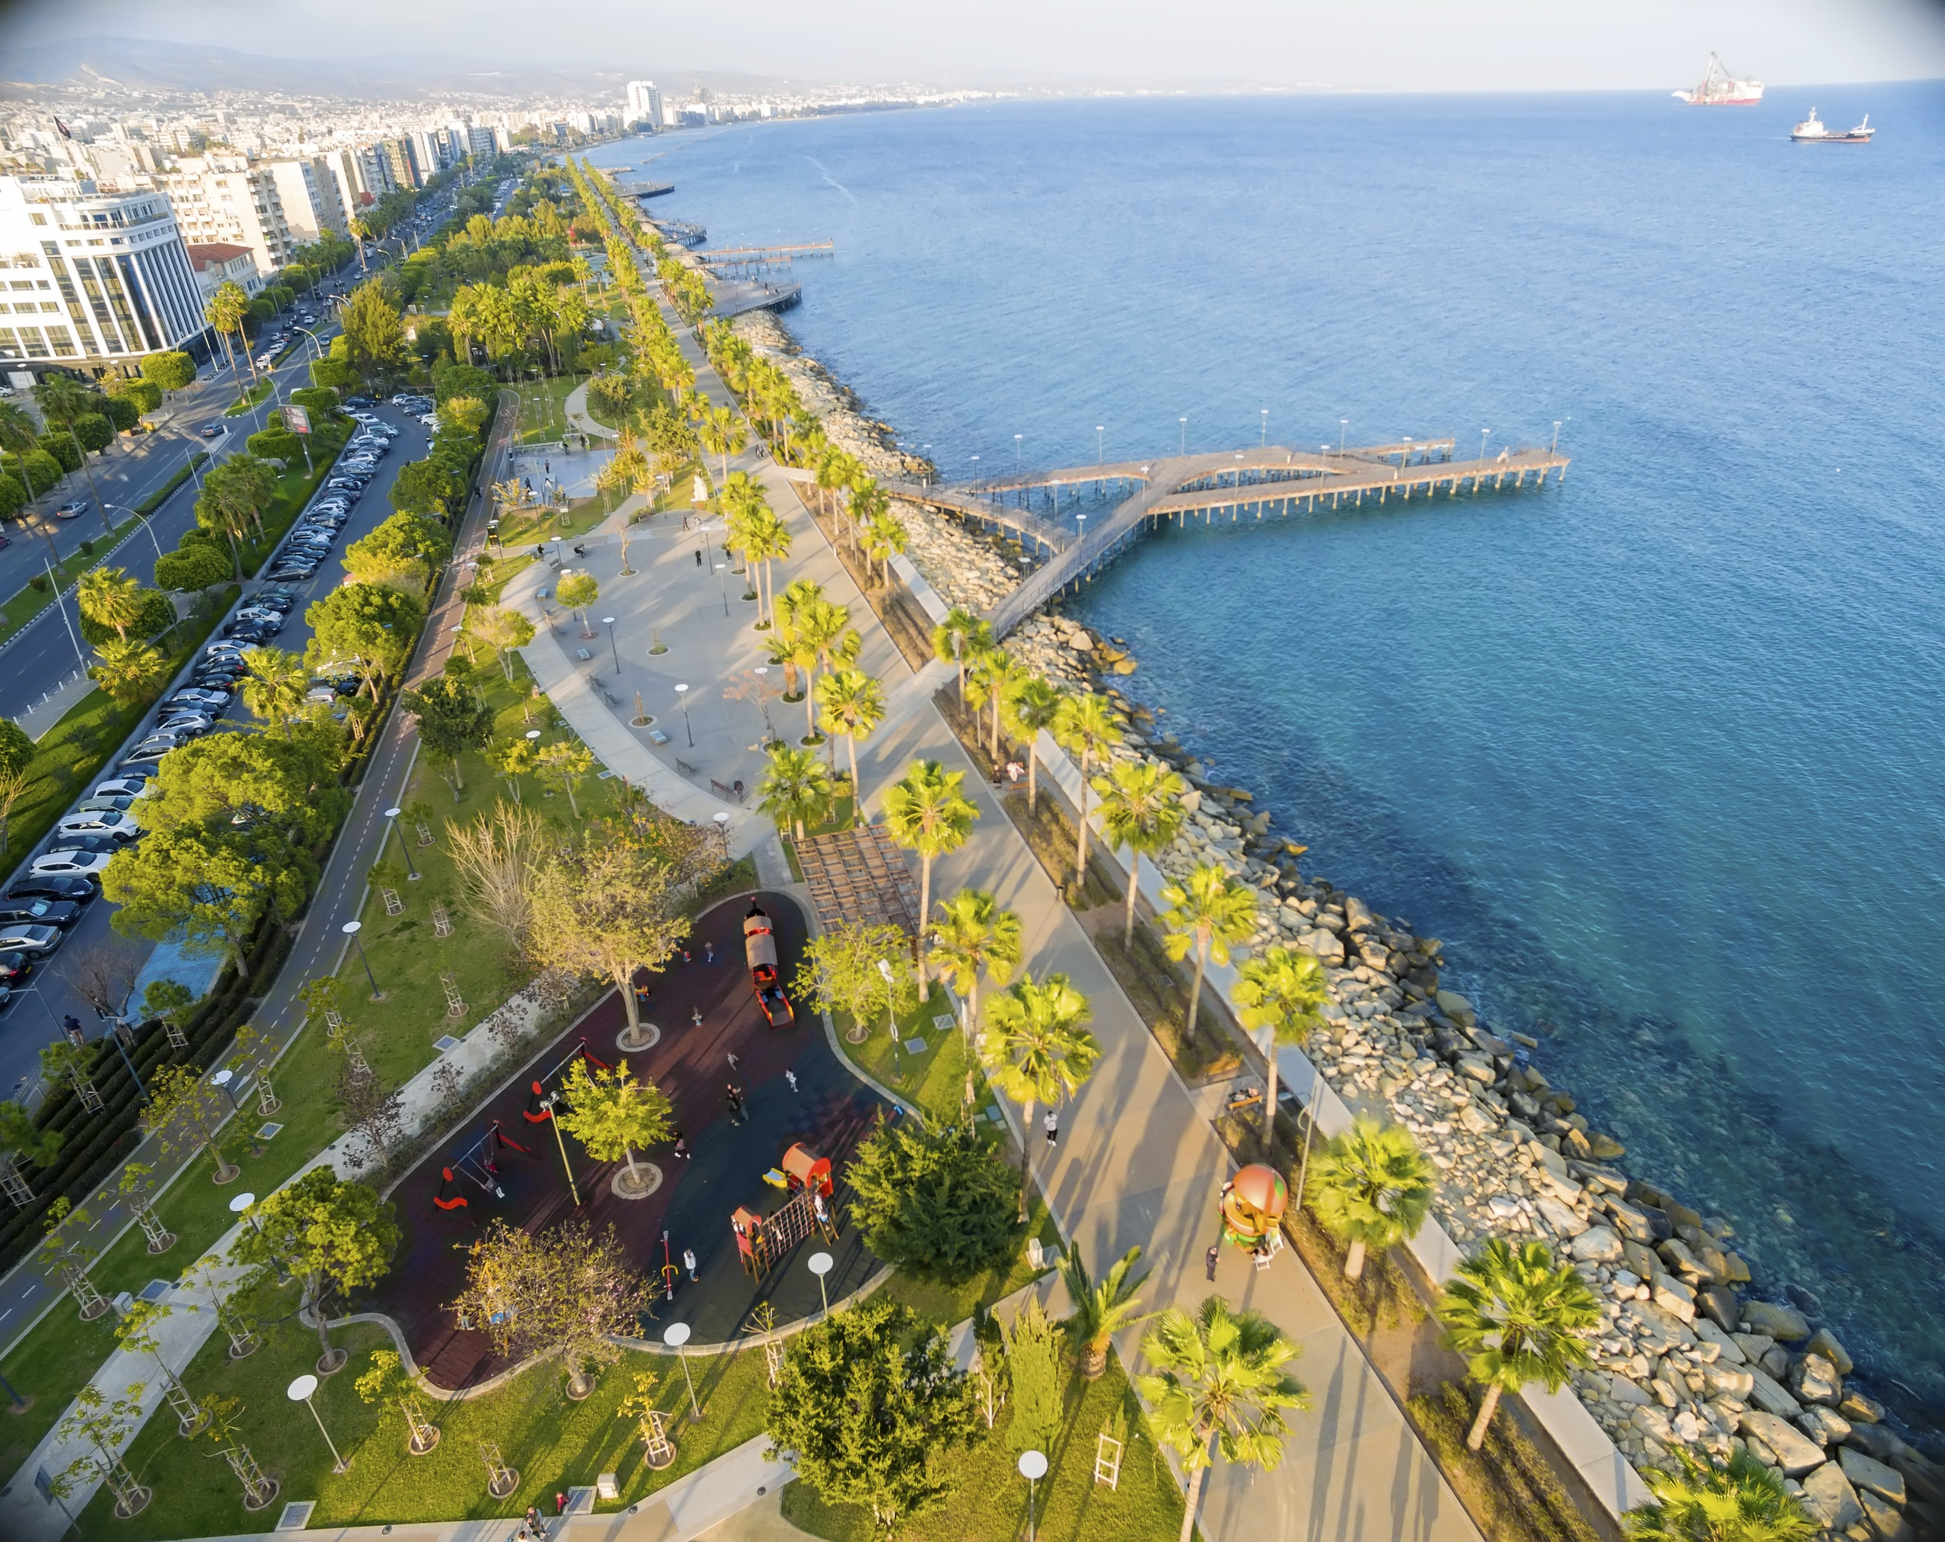 Limassol listed in 100 best cities to live in the world